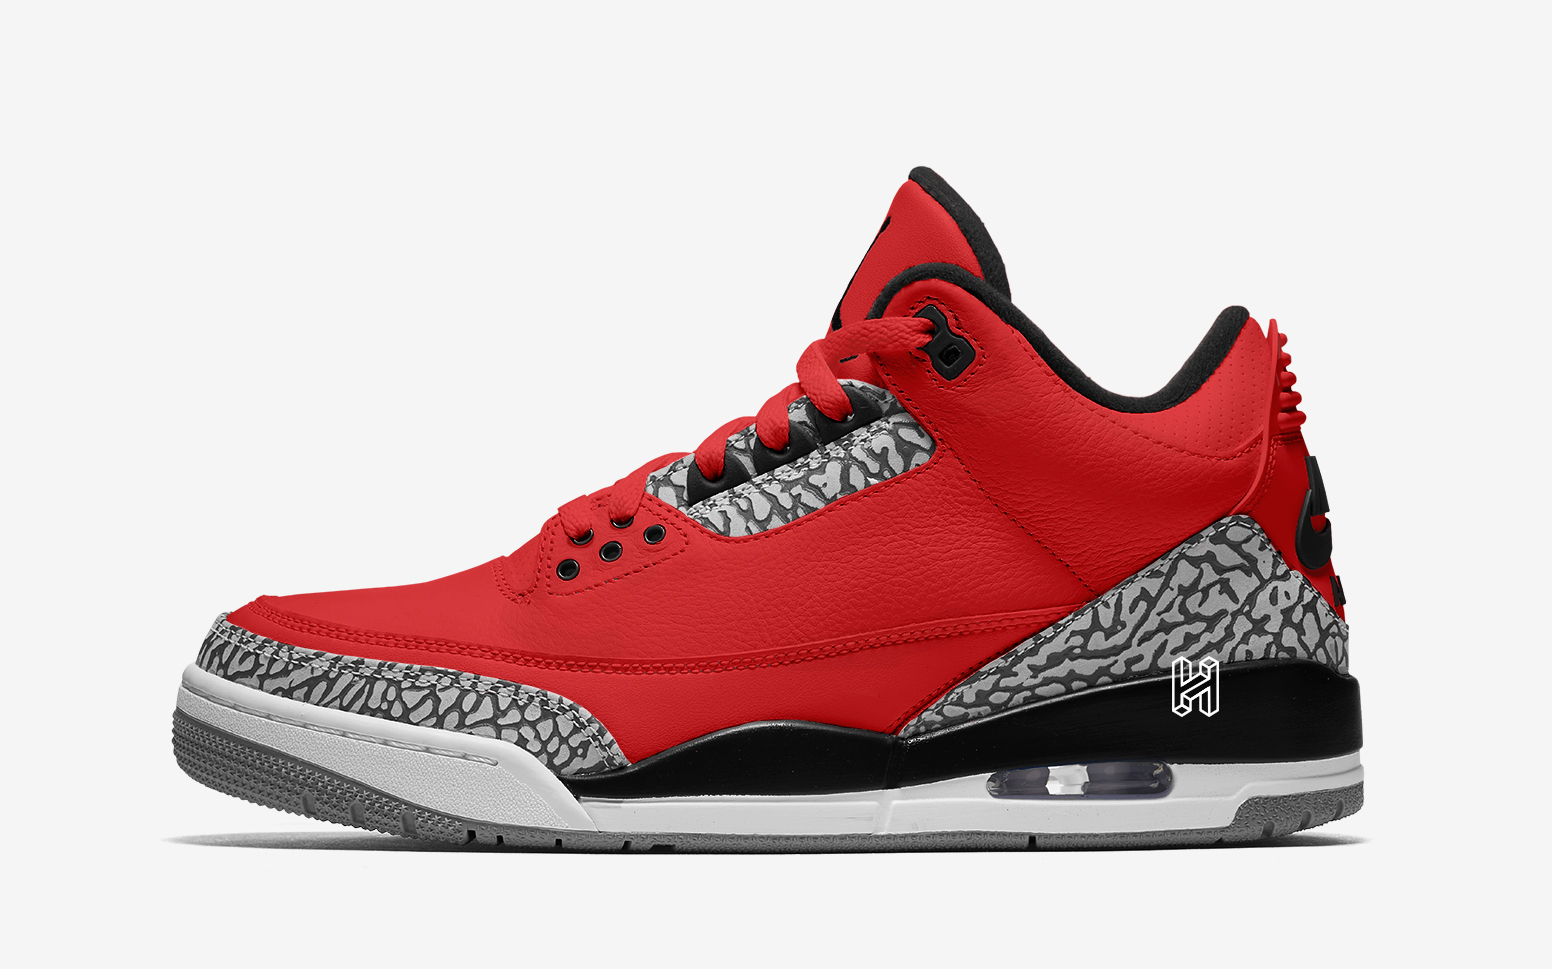 Air Jordan 3 All Star